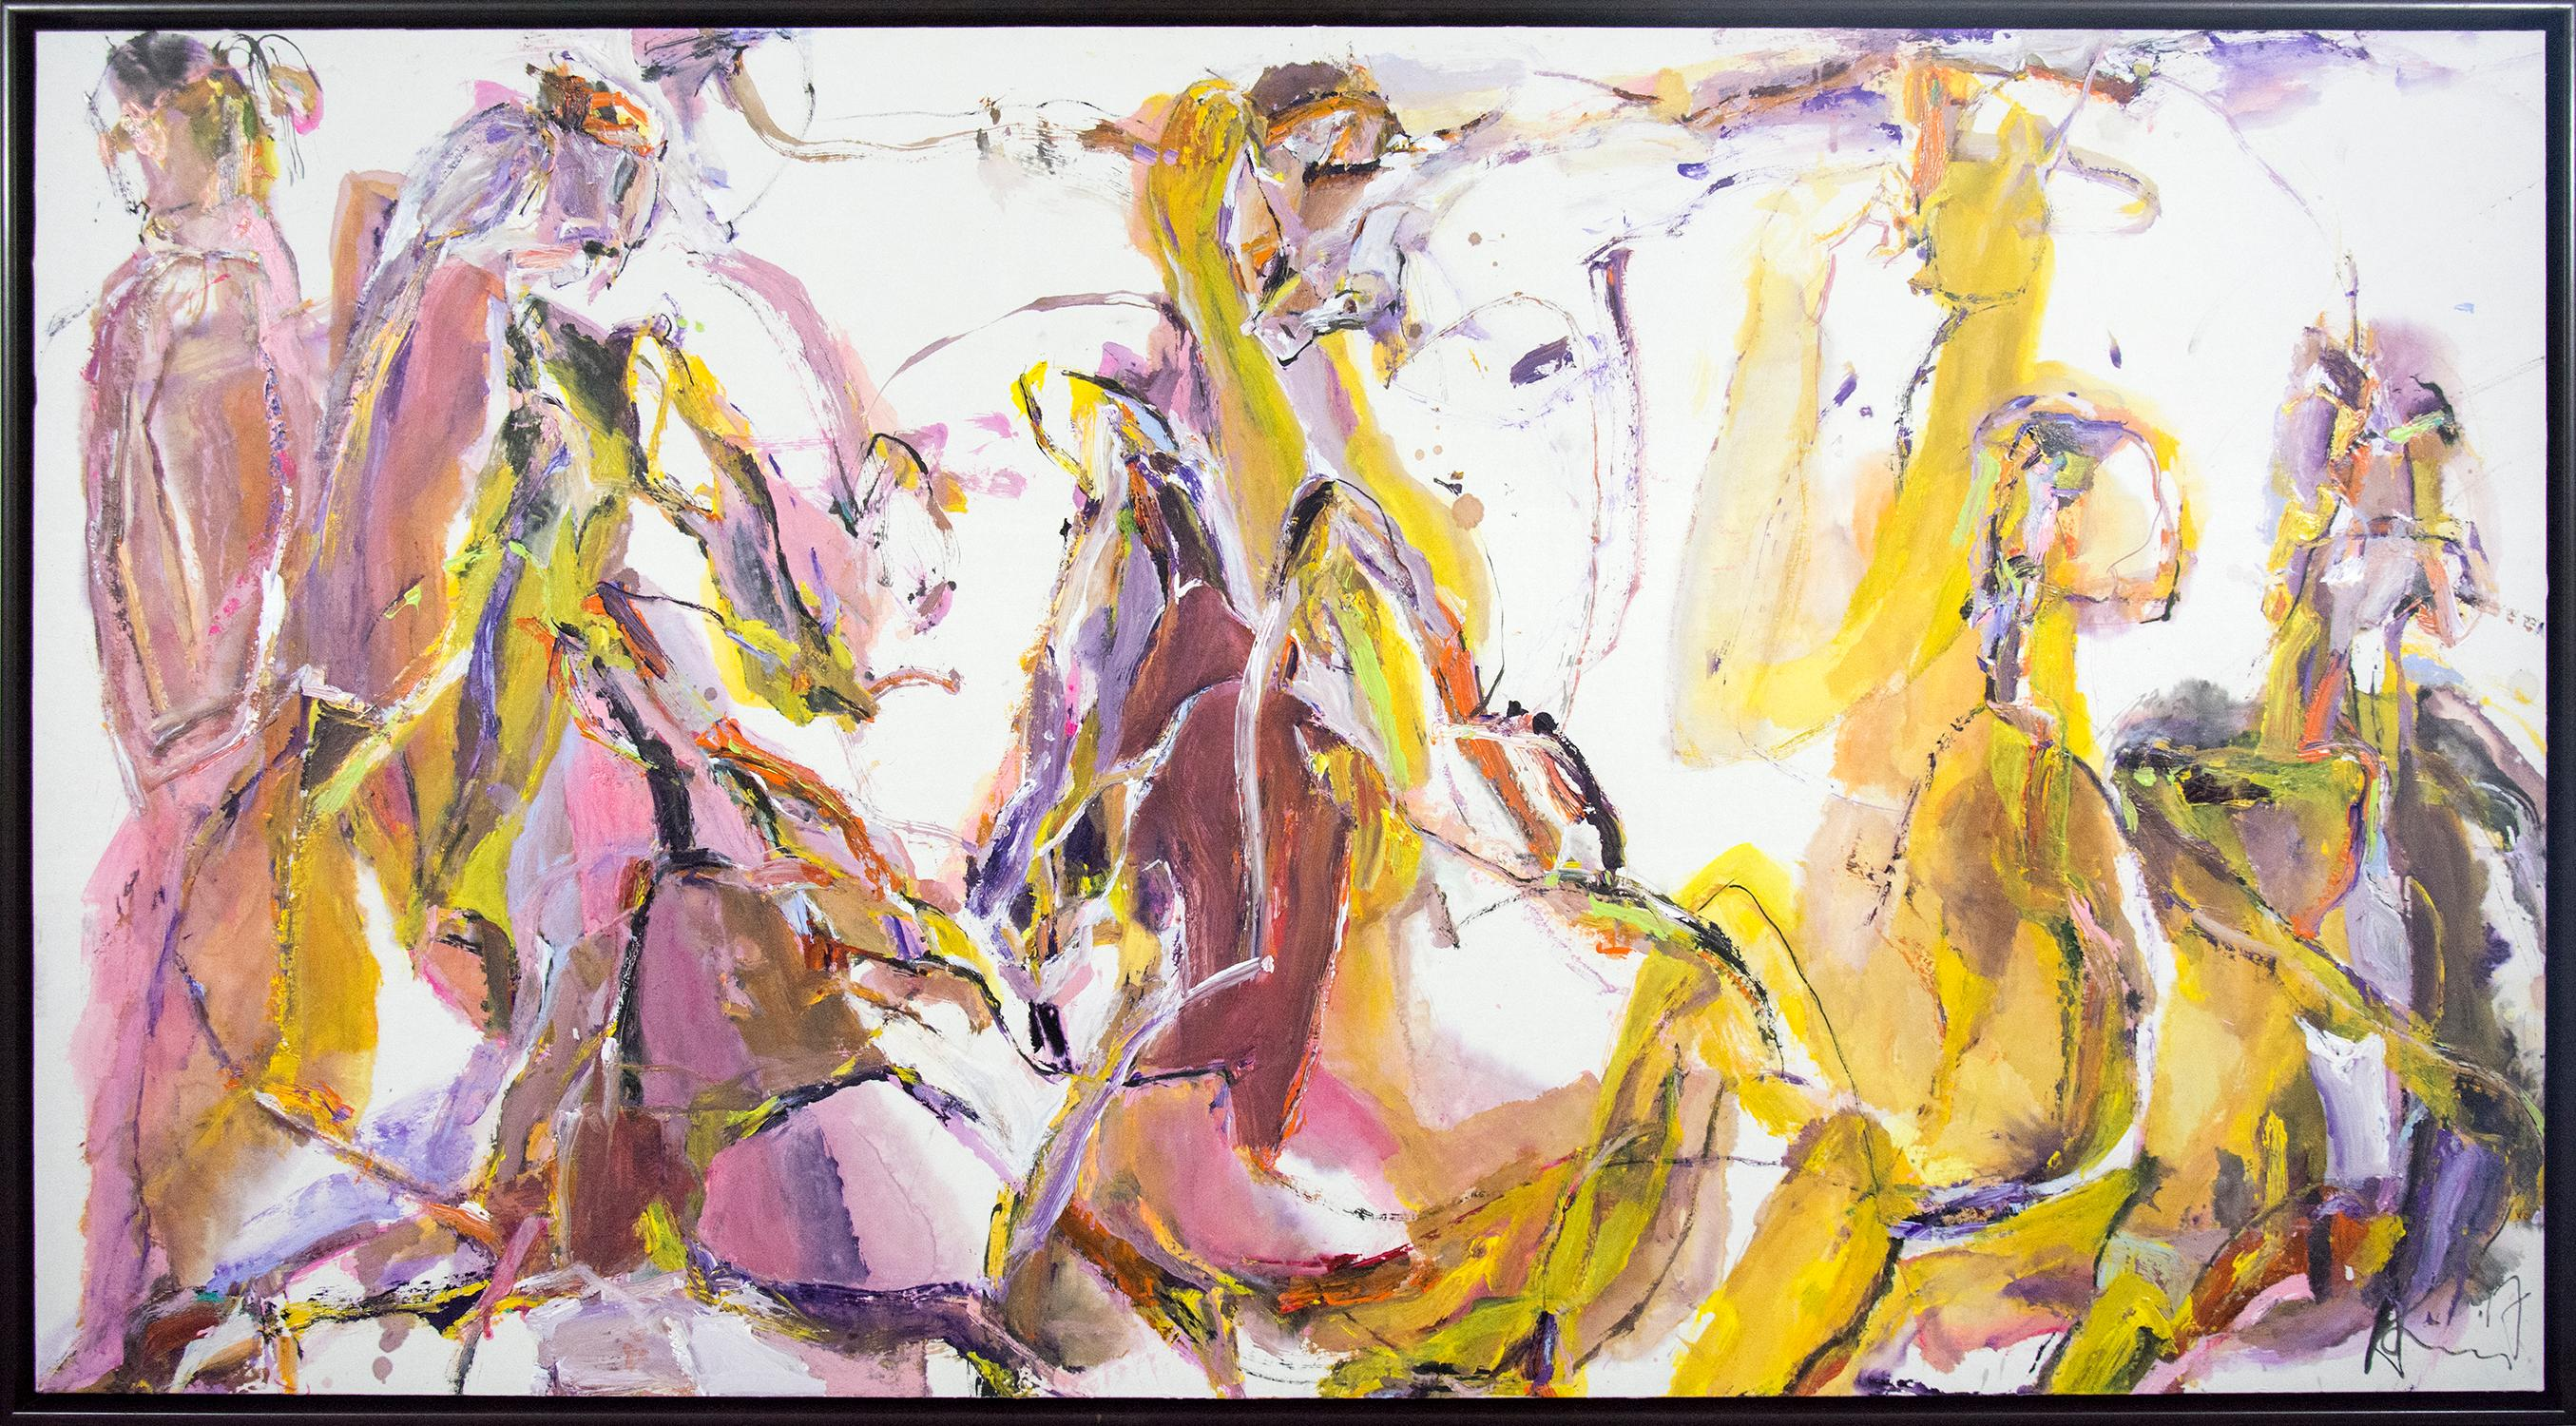 Pink Whisper - ink and acrylic gestural abstract figures in pink and gold